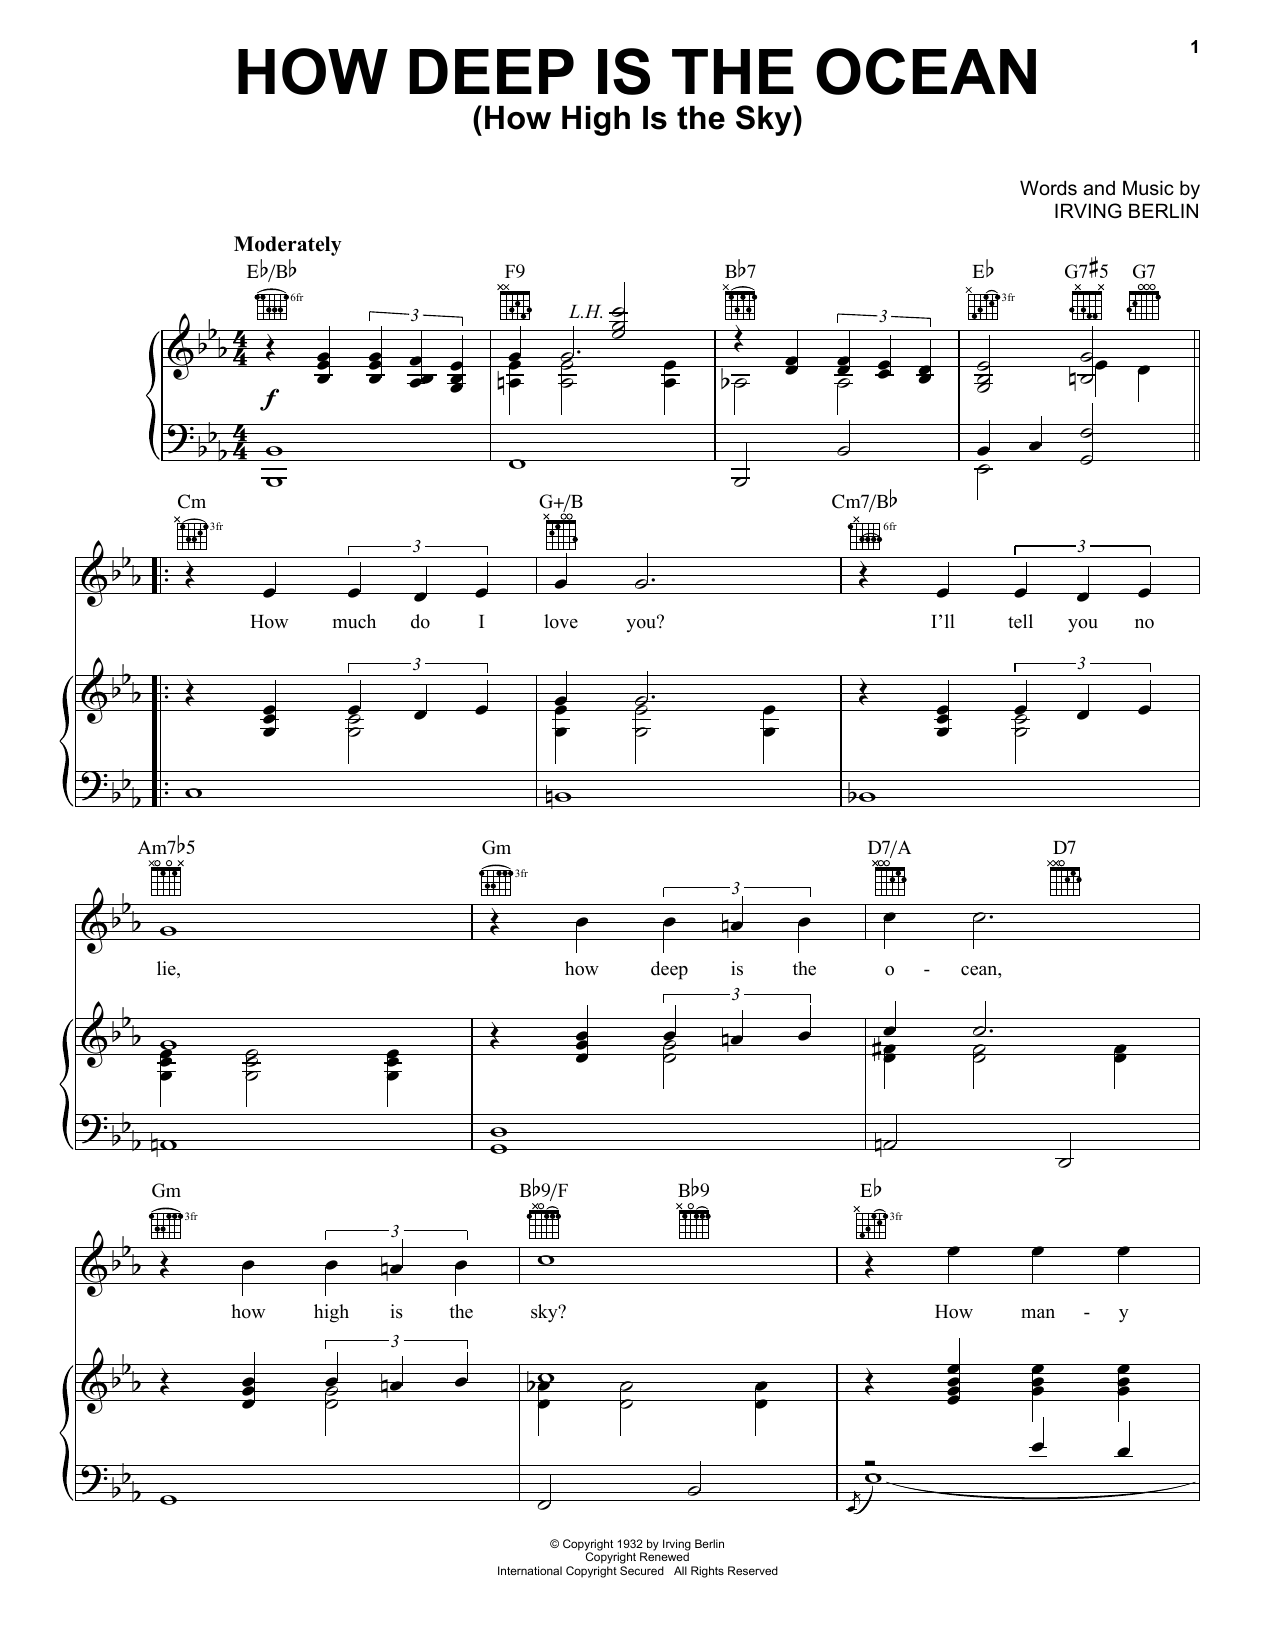 Irving Berlin How Deep Is The Ocean (How High Is The Sky) sheet music notes and chords. Download Printable PDF.